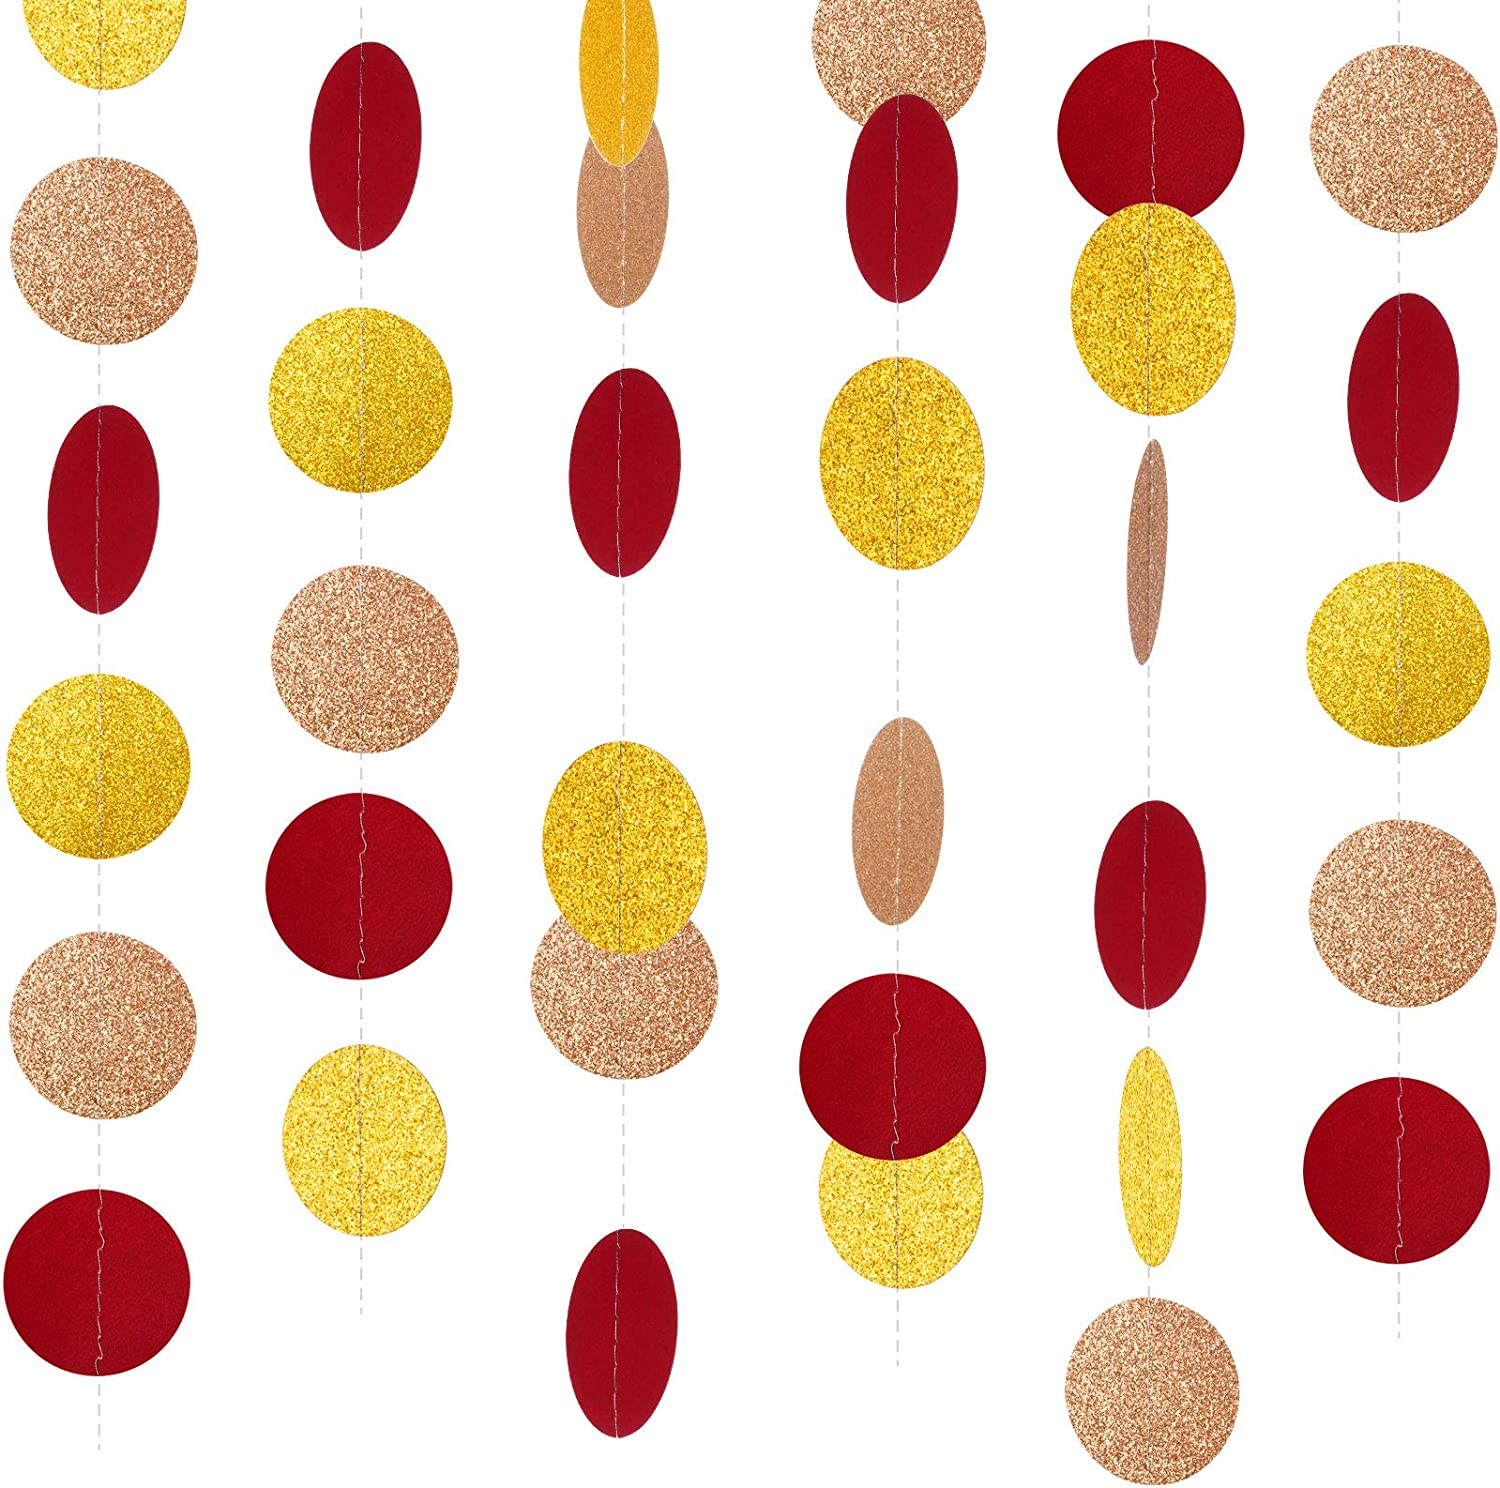 10 Pack Paper Garlands Glitter Circle Dots Hanging Party Garland Paper Banner Decor for Winter Christmas New Year Wedding Birthday Party Valentine's Decor, 131 Feet Totally (Gold, Burgundy, Champagne)